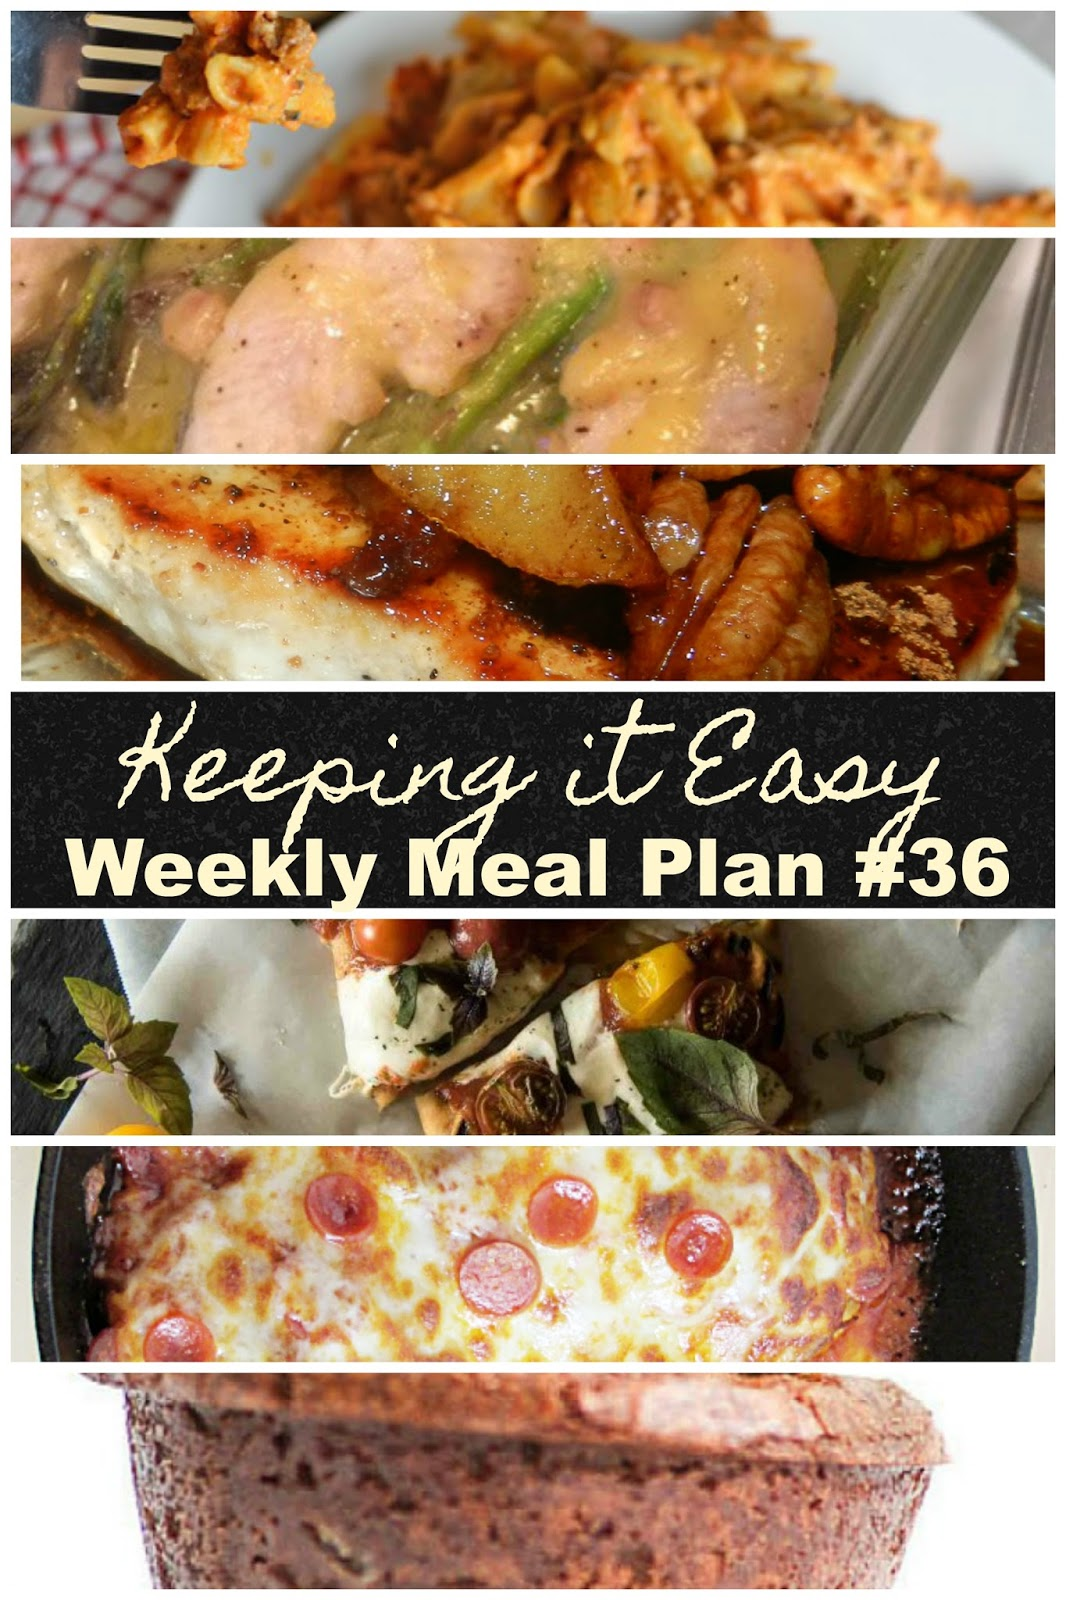 Easy Weekly Meal Plan #36 from My Fearless Kitchen. This week's meal plan includesSpinach & Tomato Veggie Omelet, Creamy Cheesy Baked Ziti, Chicken & Asparagus Casserole, Caramel Apple Pork Chops, Grilled Margherita Flatbread, Skillet Pizza Chicken, and Gooey S'More Brownie Cups.